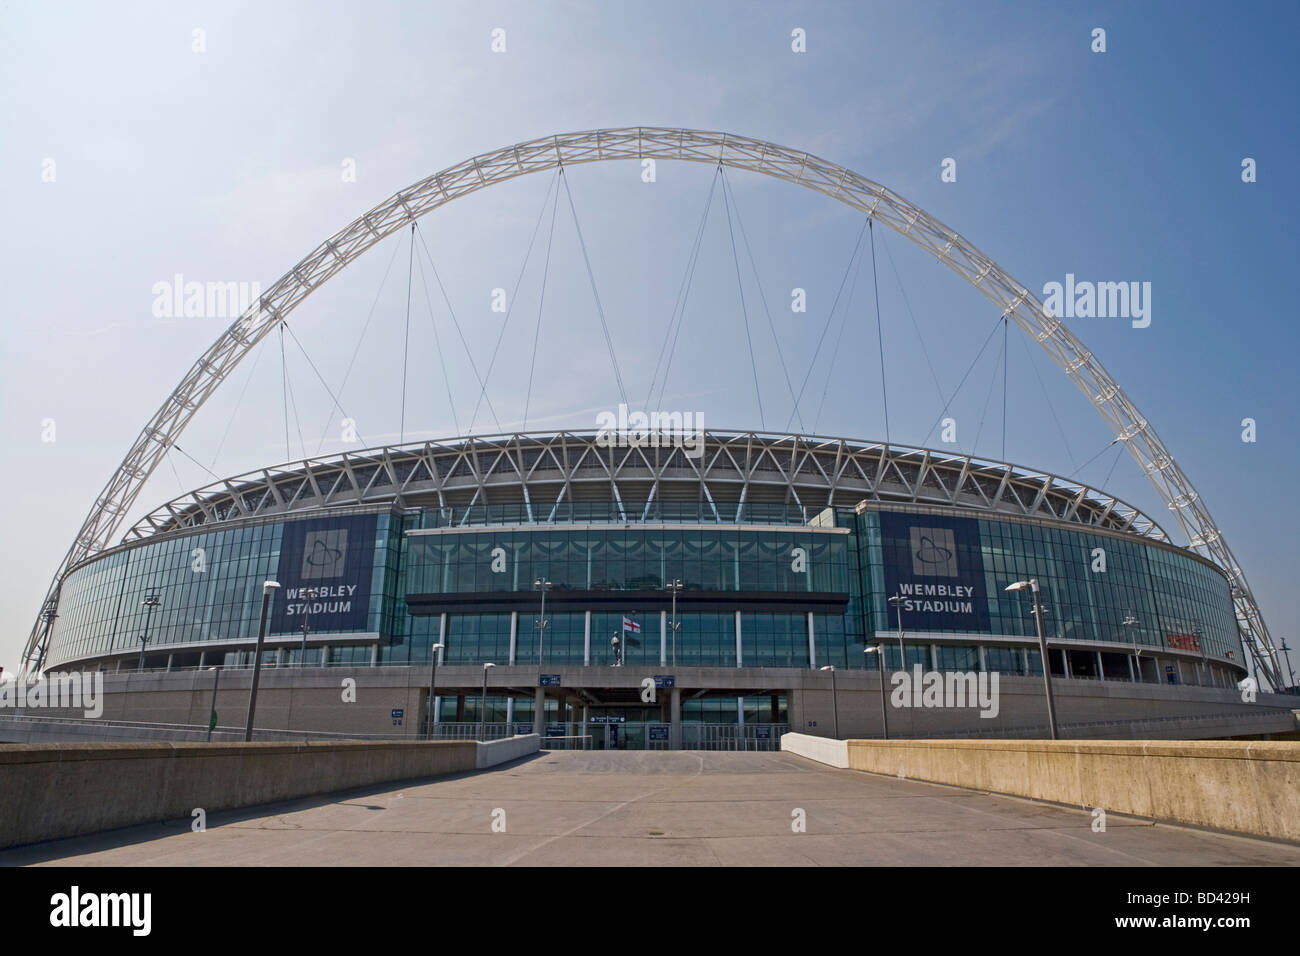 Wembley Stadium London England Thursday July 02 2009 - Stock Image